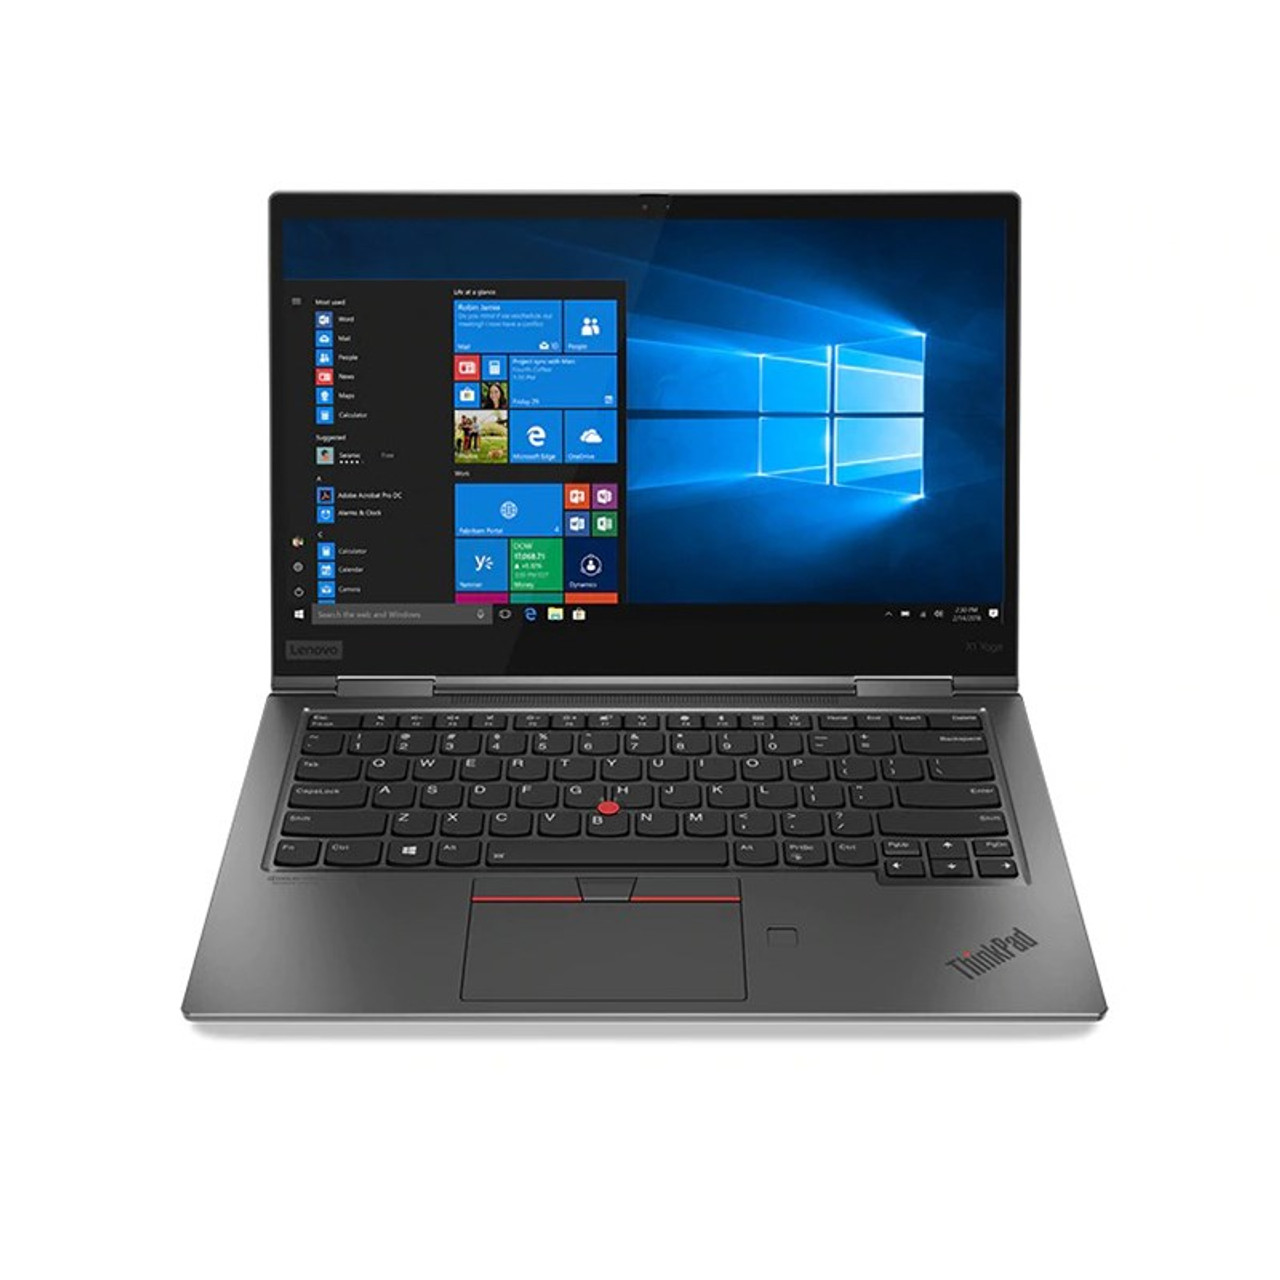 Image for Lenovo X1 Yoga 4th Gen 14in 2-in-1 Laptop i5-8265U 16GB 512GB SSD W10P Touch CX Computer Superstore